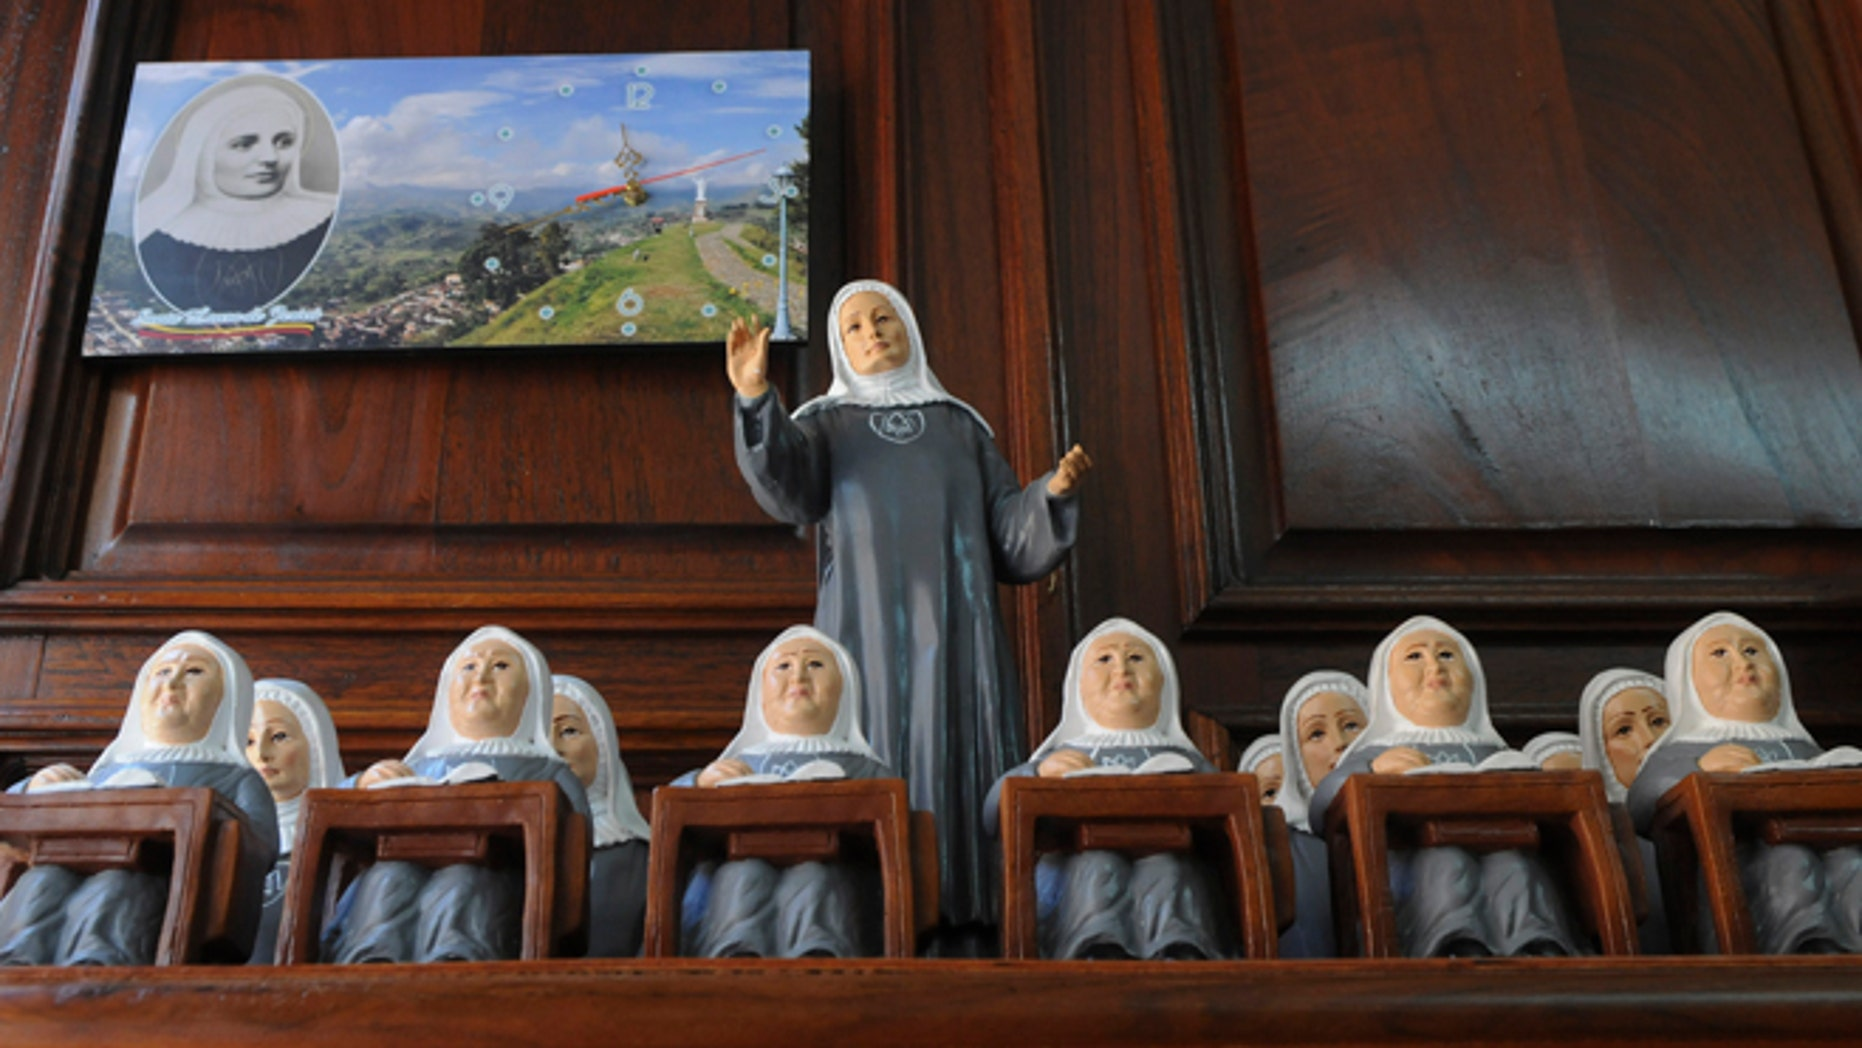 Statues of Mother Laura Montoya sit on display for sale in her hometown of Jerico, Colombia, Friday, May 10, 2013.  Mother Laura, who was born in 1874 and dedicated her life to working with indigenous and poor people, will become the country's first saint when Pope Francis canonizes her on Sunday. (AP Photo/Luis Benavides)